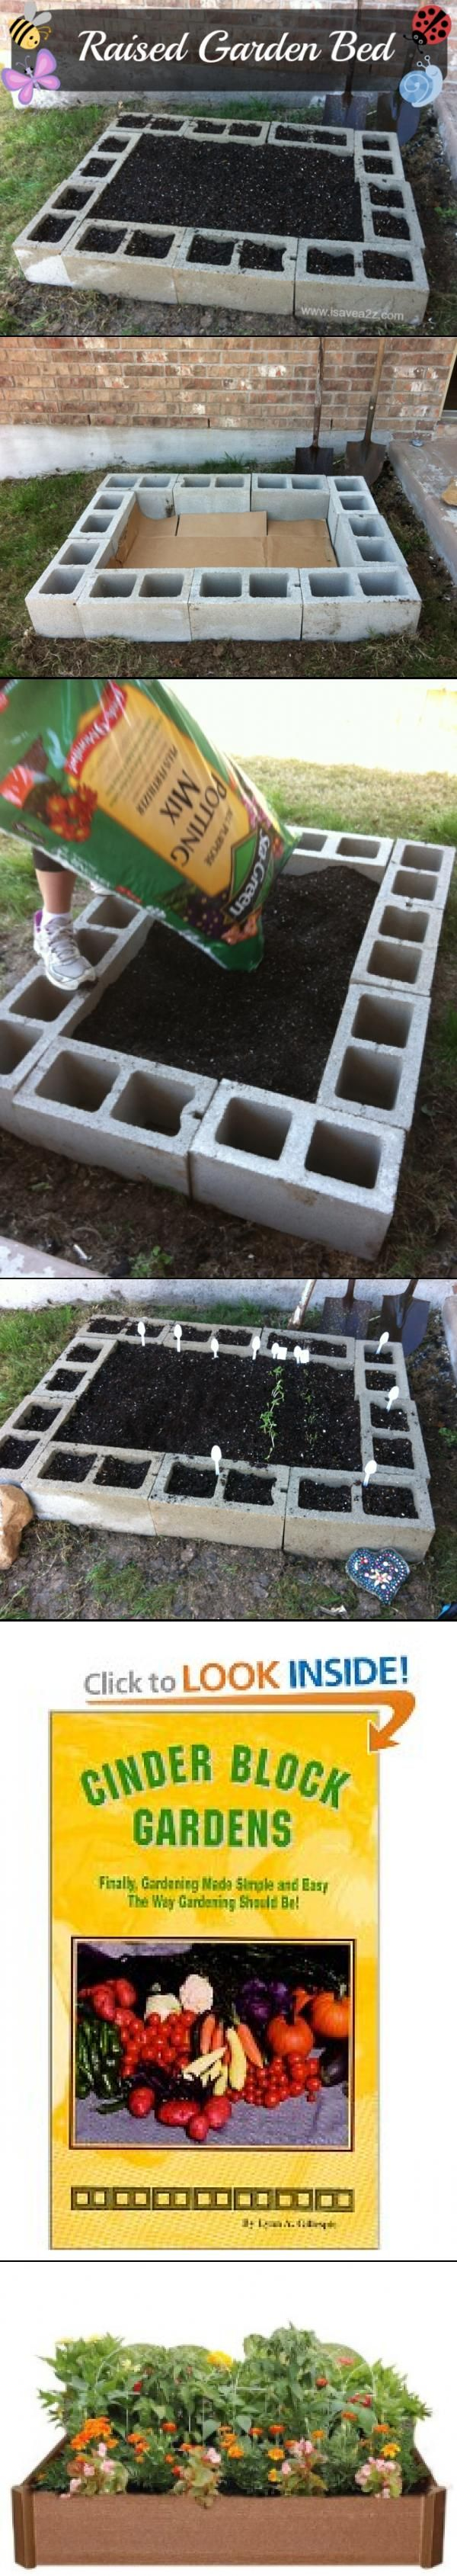 Raised Garden Bed Tutorial! A favorite